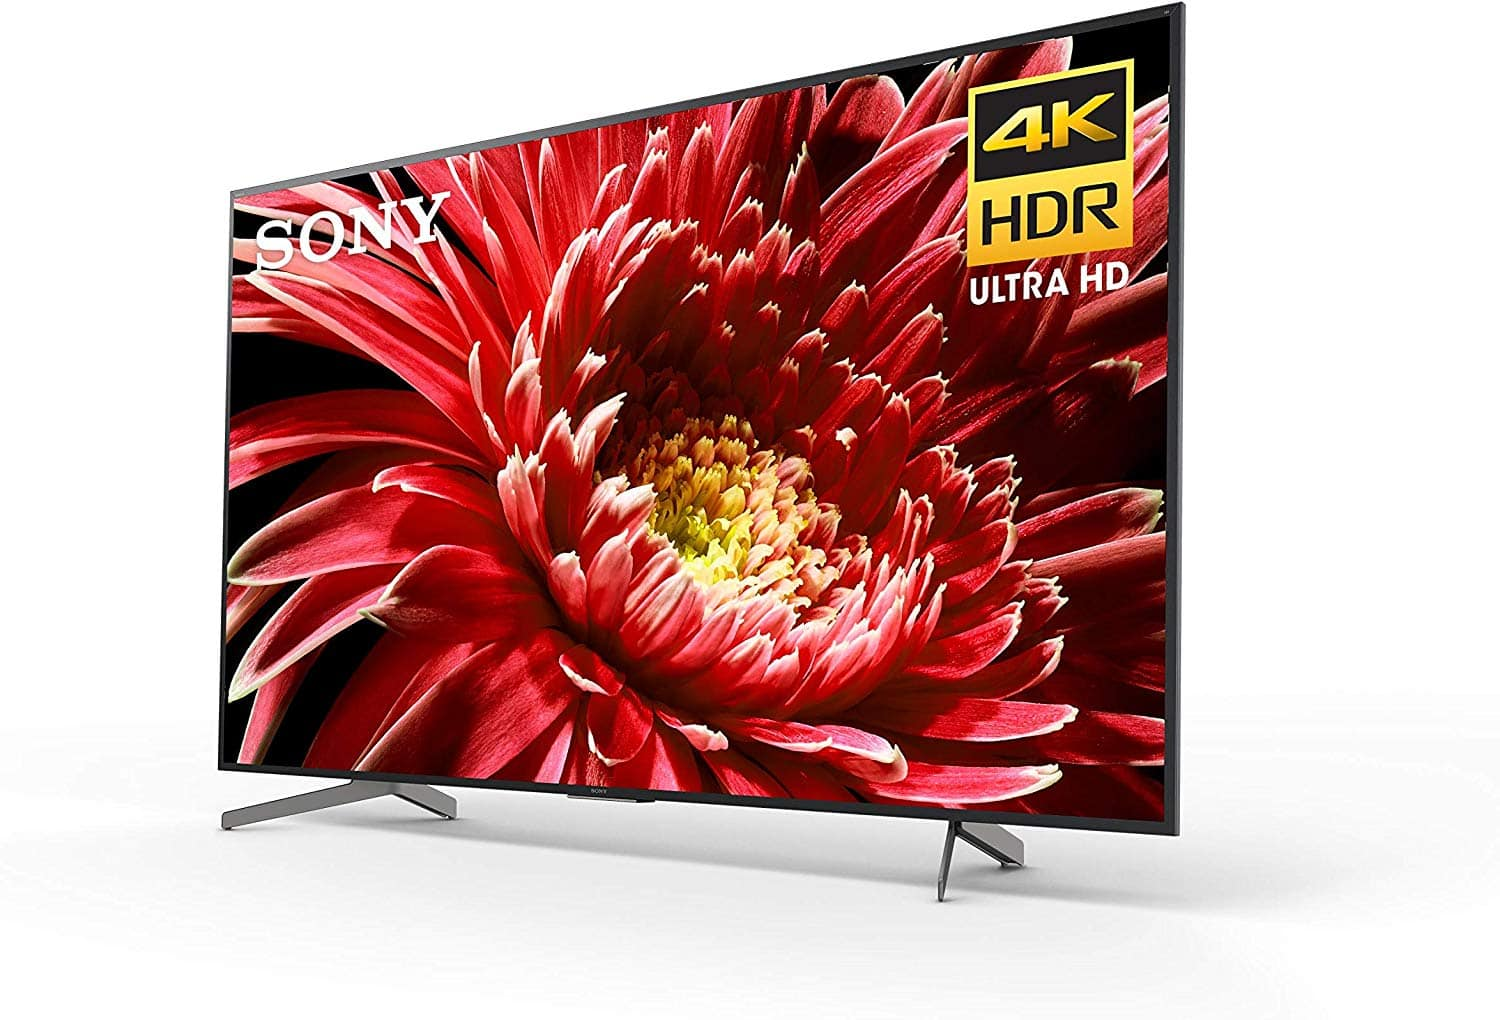 Sony XBR-X850G 85-Inch $1798.20 & XBR-X950G  $1258.20 after 10% Prime Cash Back